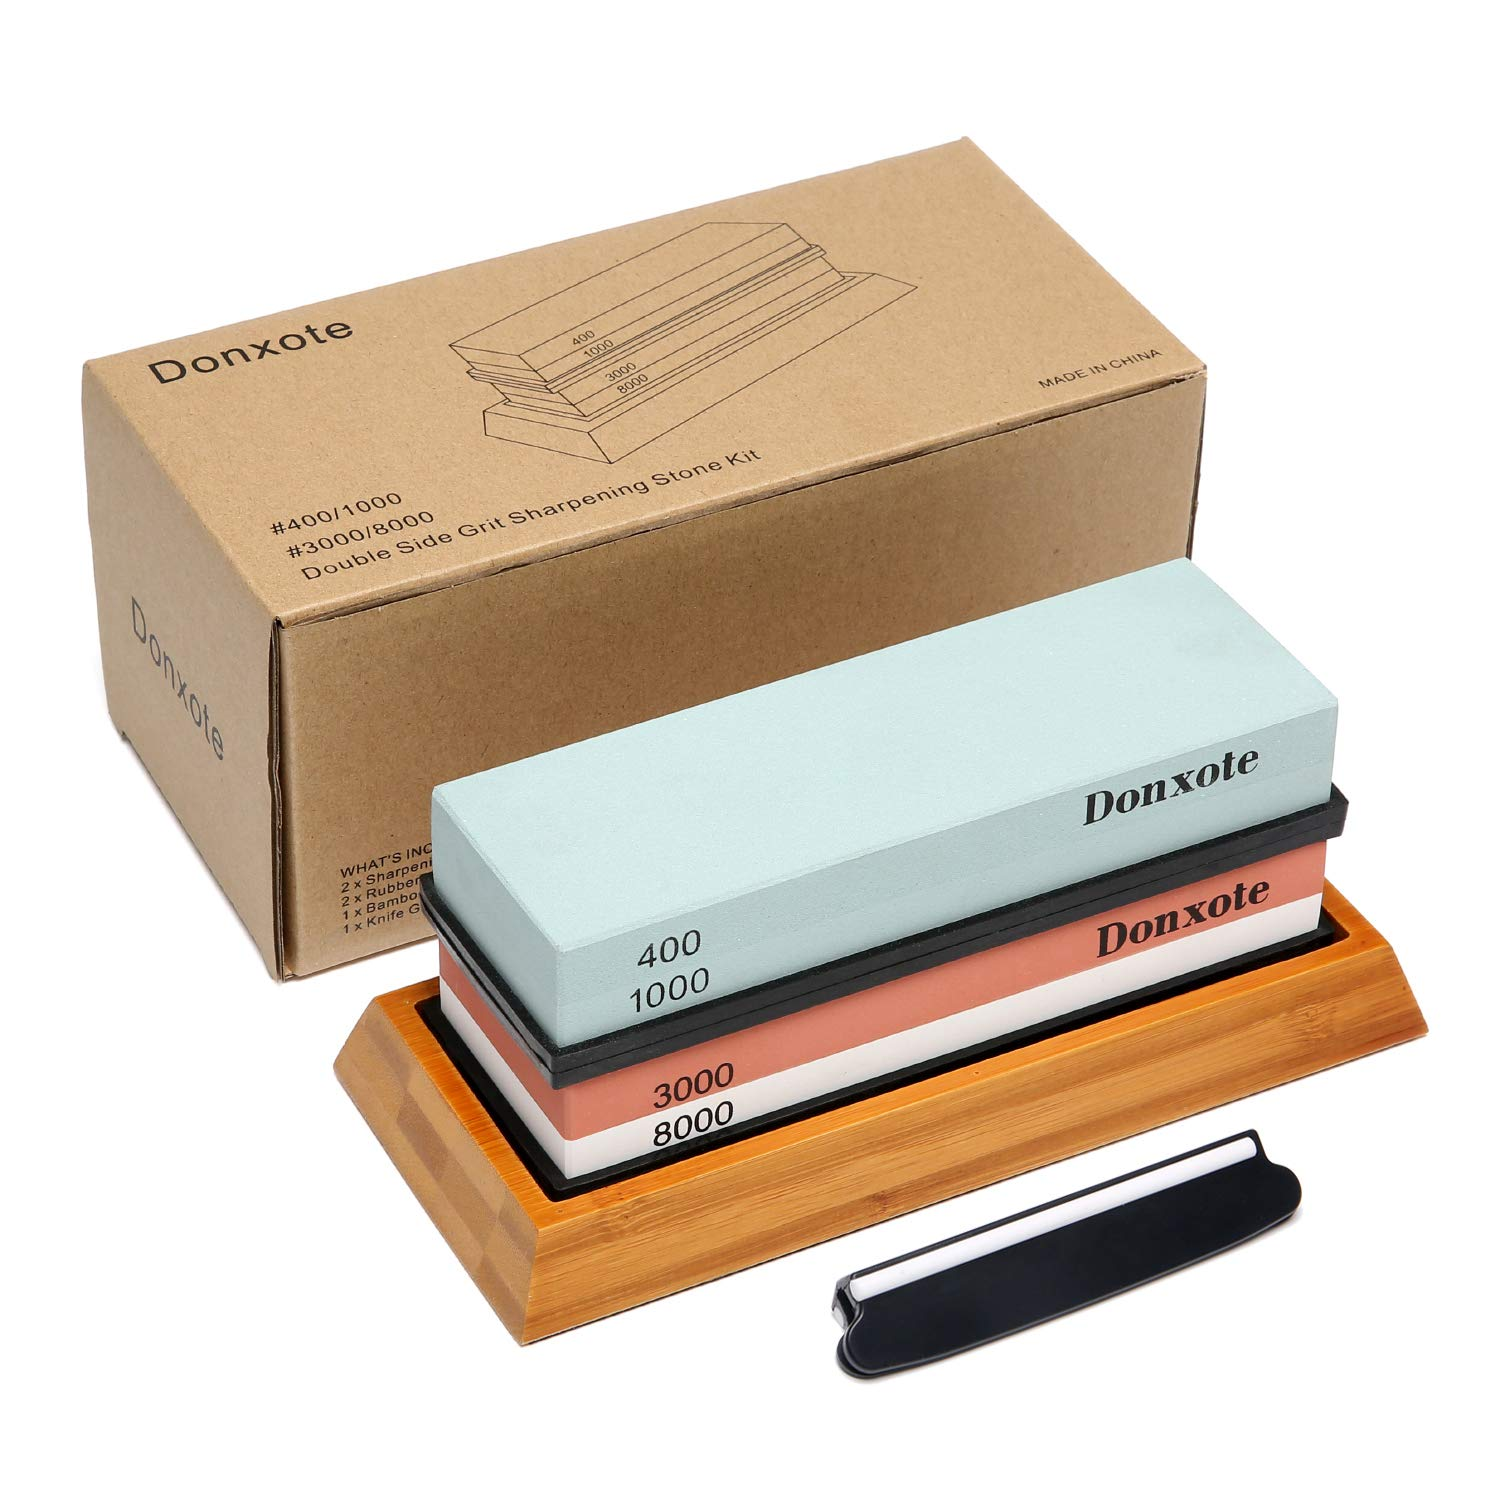 Donxote Knife Sharpening Stone, 400/1000 3000/8000 Double Side Grit Waterstone, Professional Chef Whetstone Sharpener, NonSlip Bamboo Base & Angle Guide by Donxote